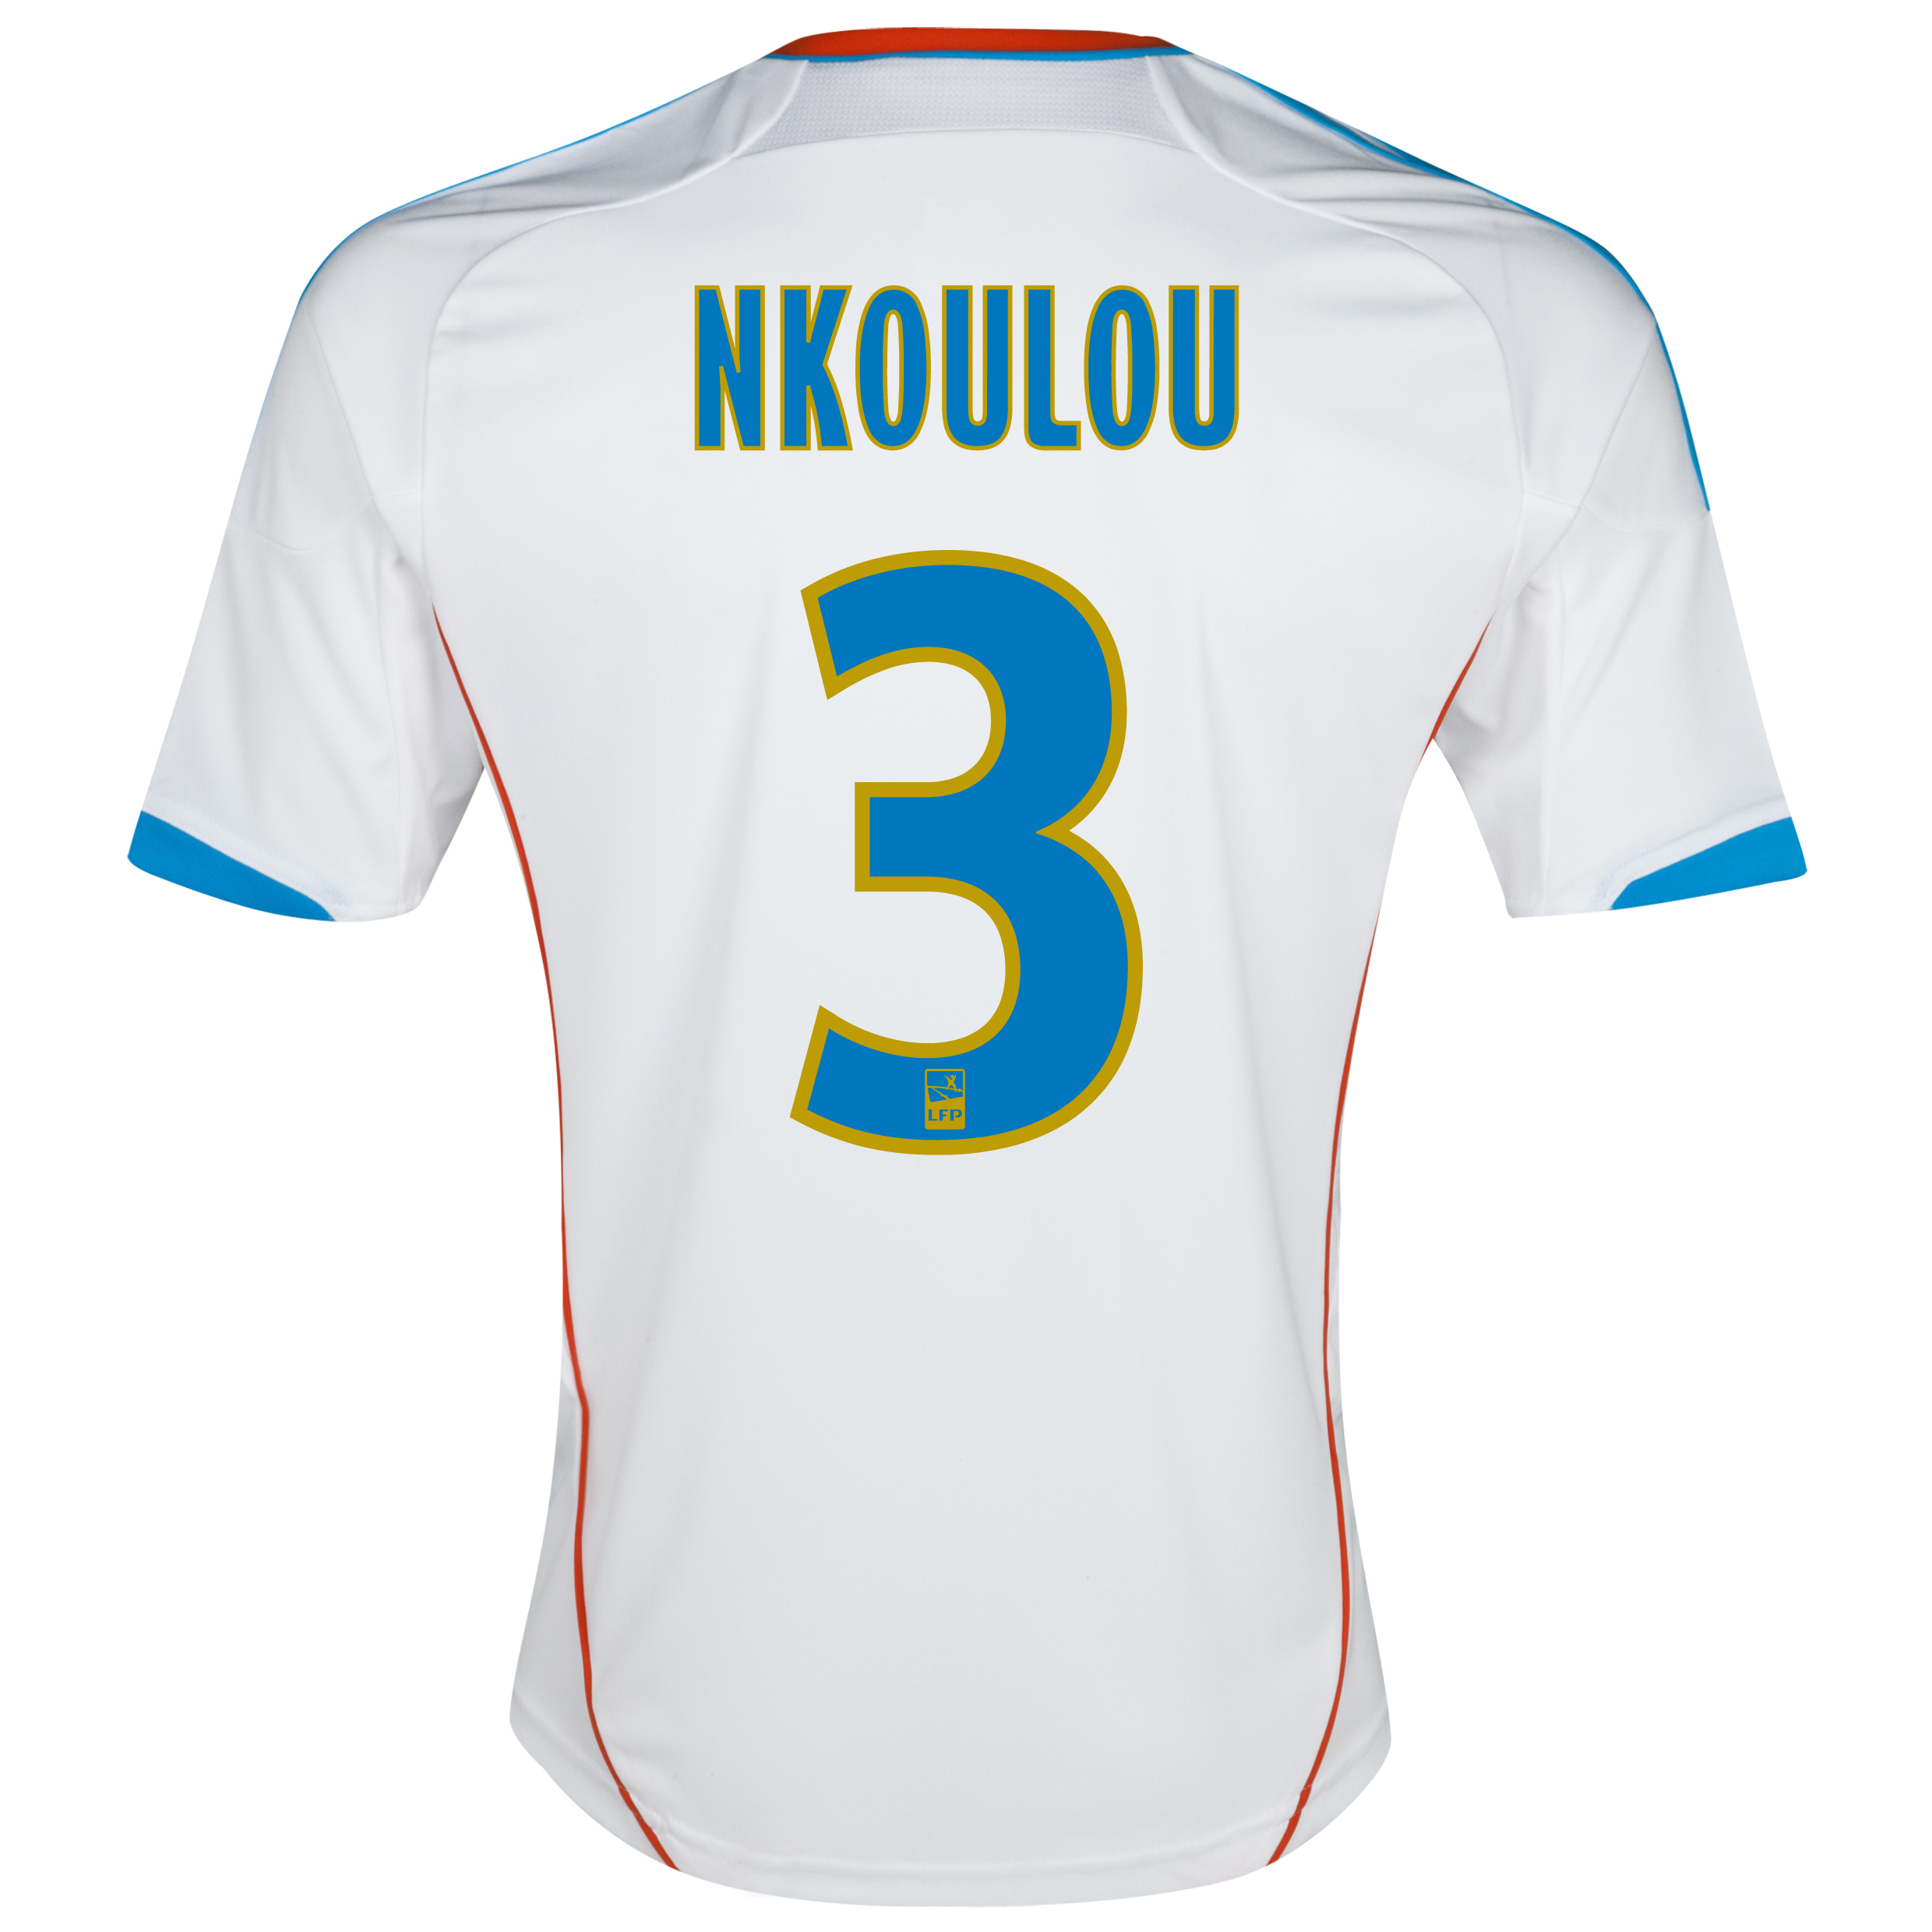 Olympique de Marseille Junior Home Replica 2012/13 with Nkoulou 3 printing